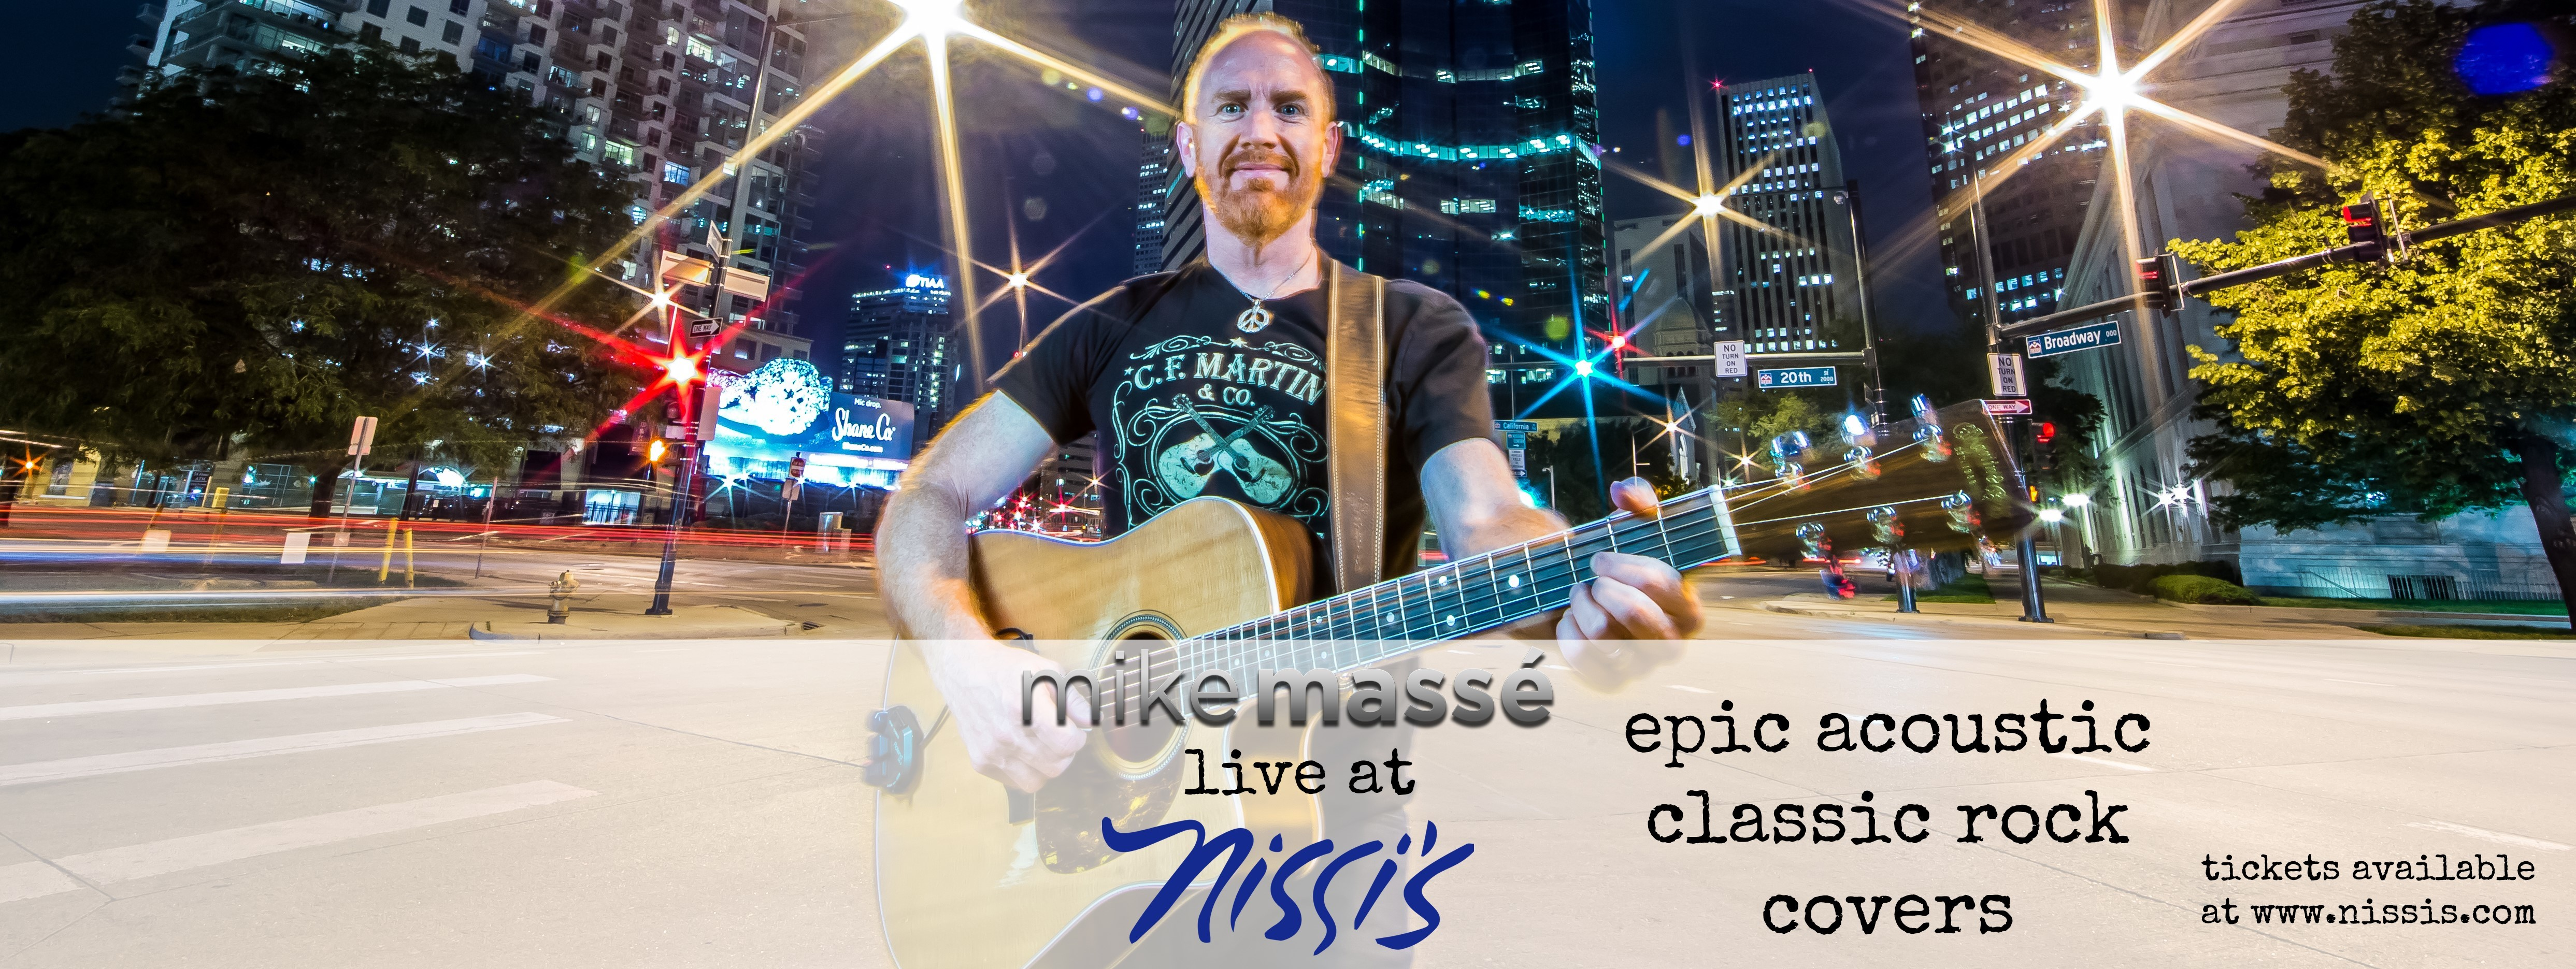 Mike Masse – May 26 2019 – 7:00pm 01388